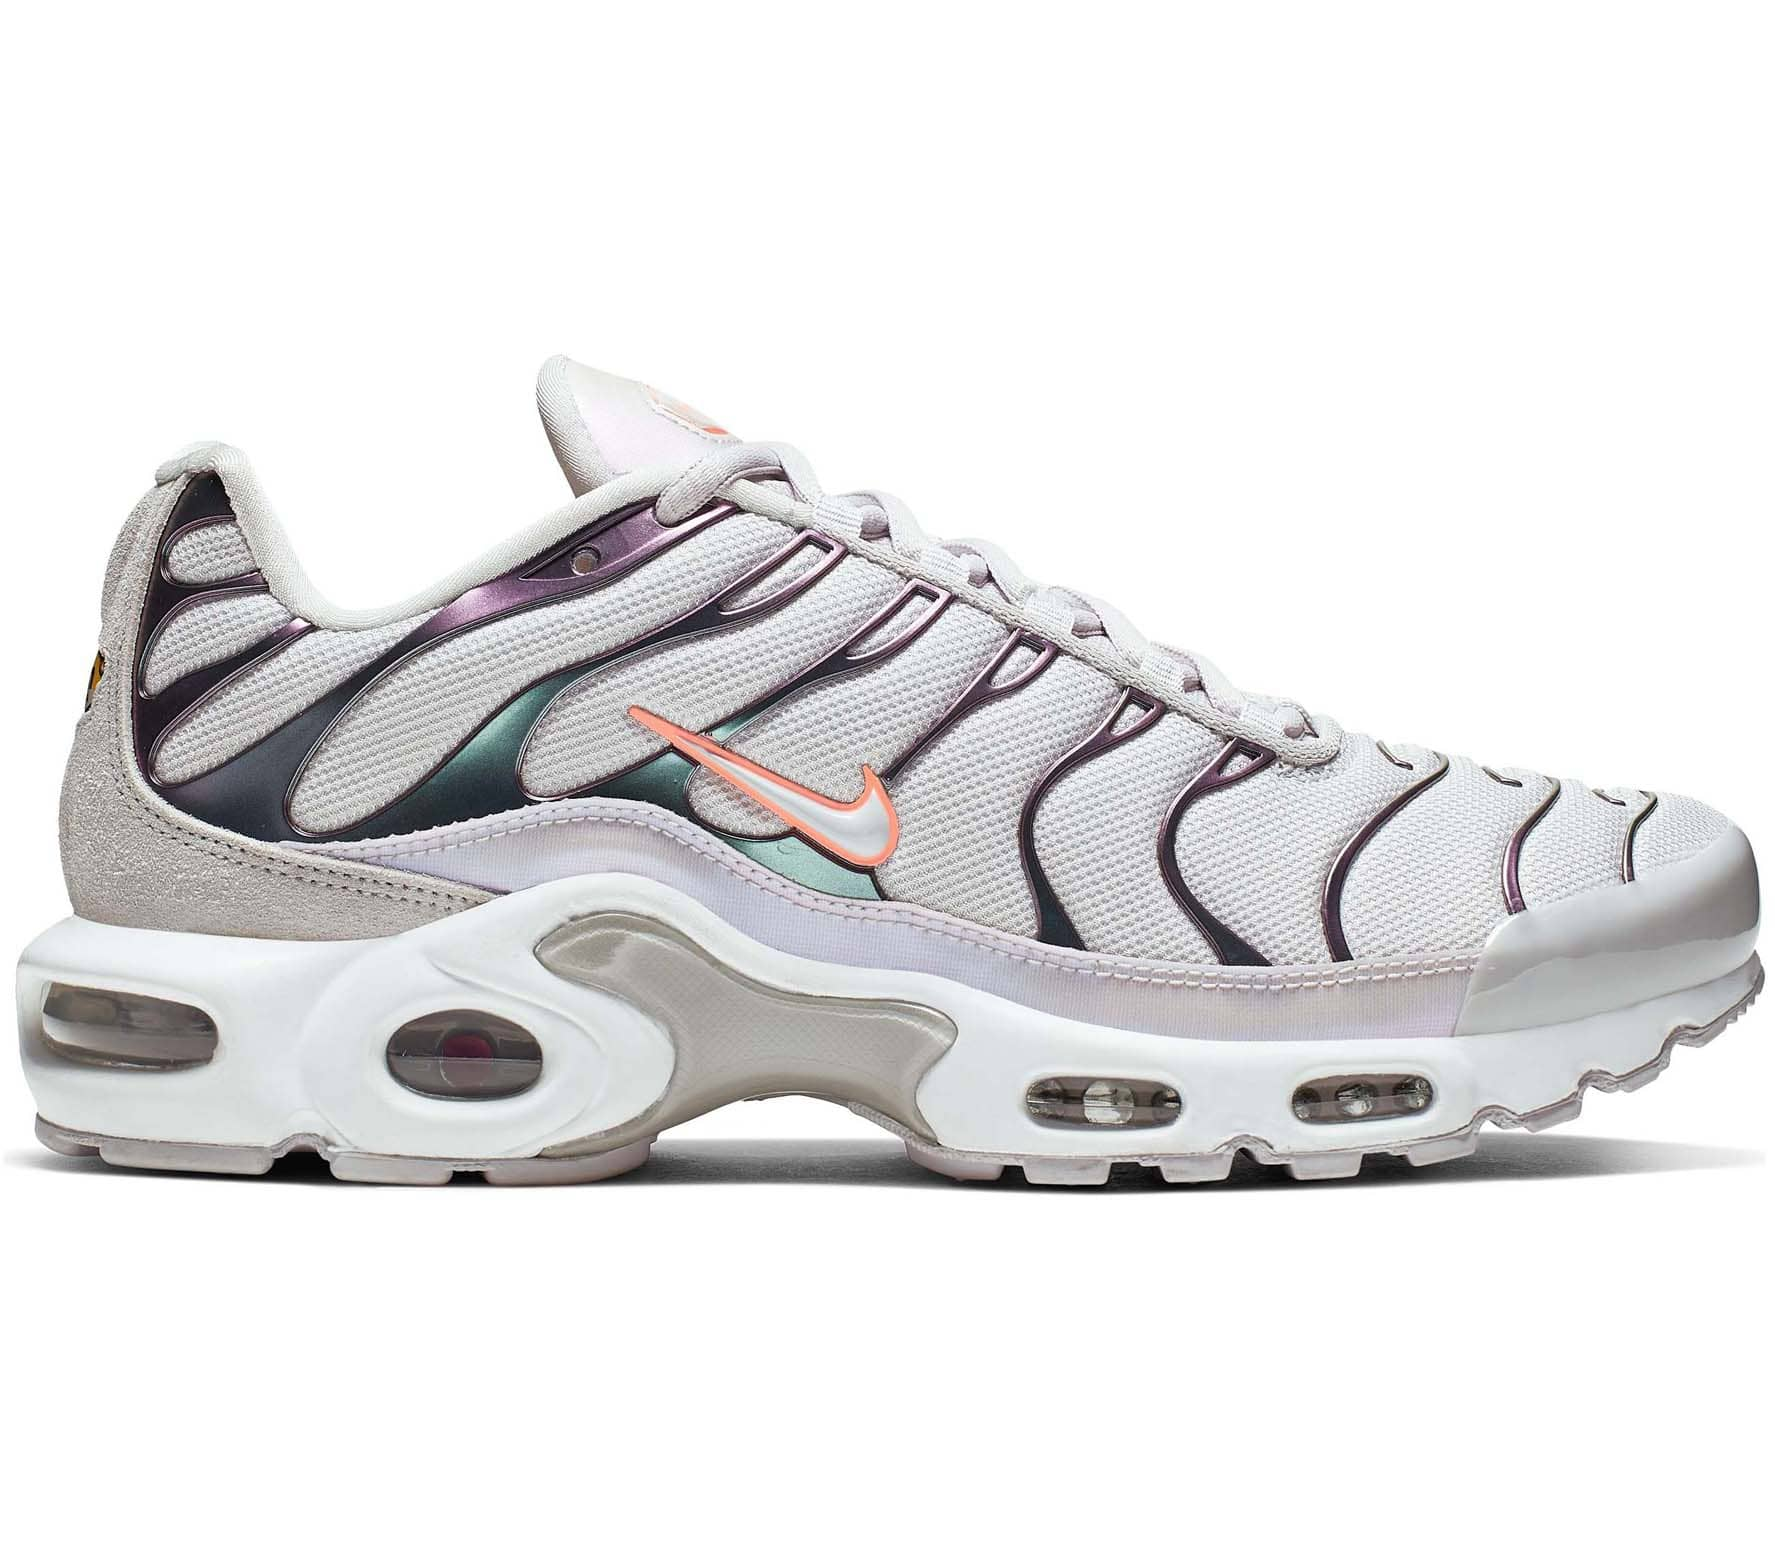 Air Max Plus Women Sneakers